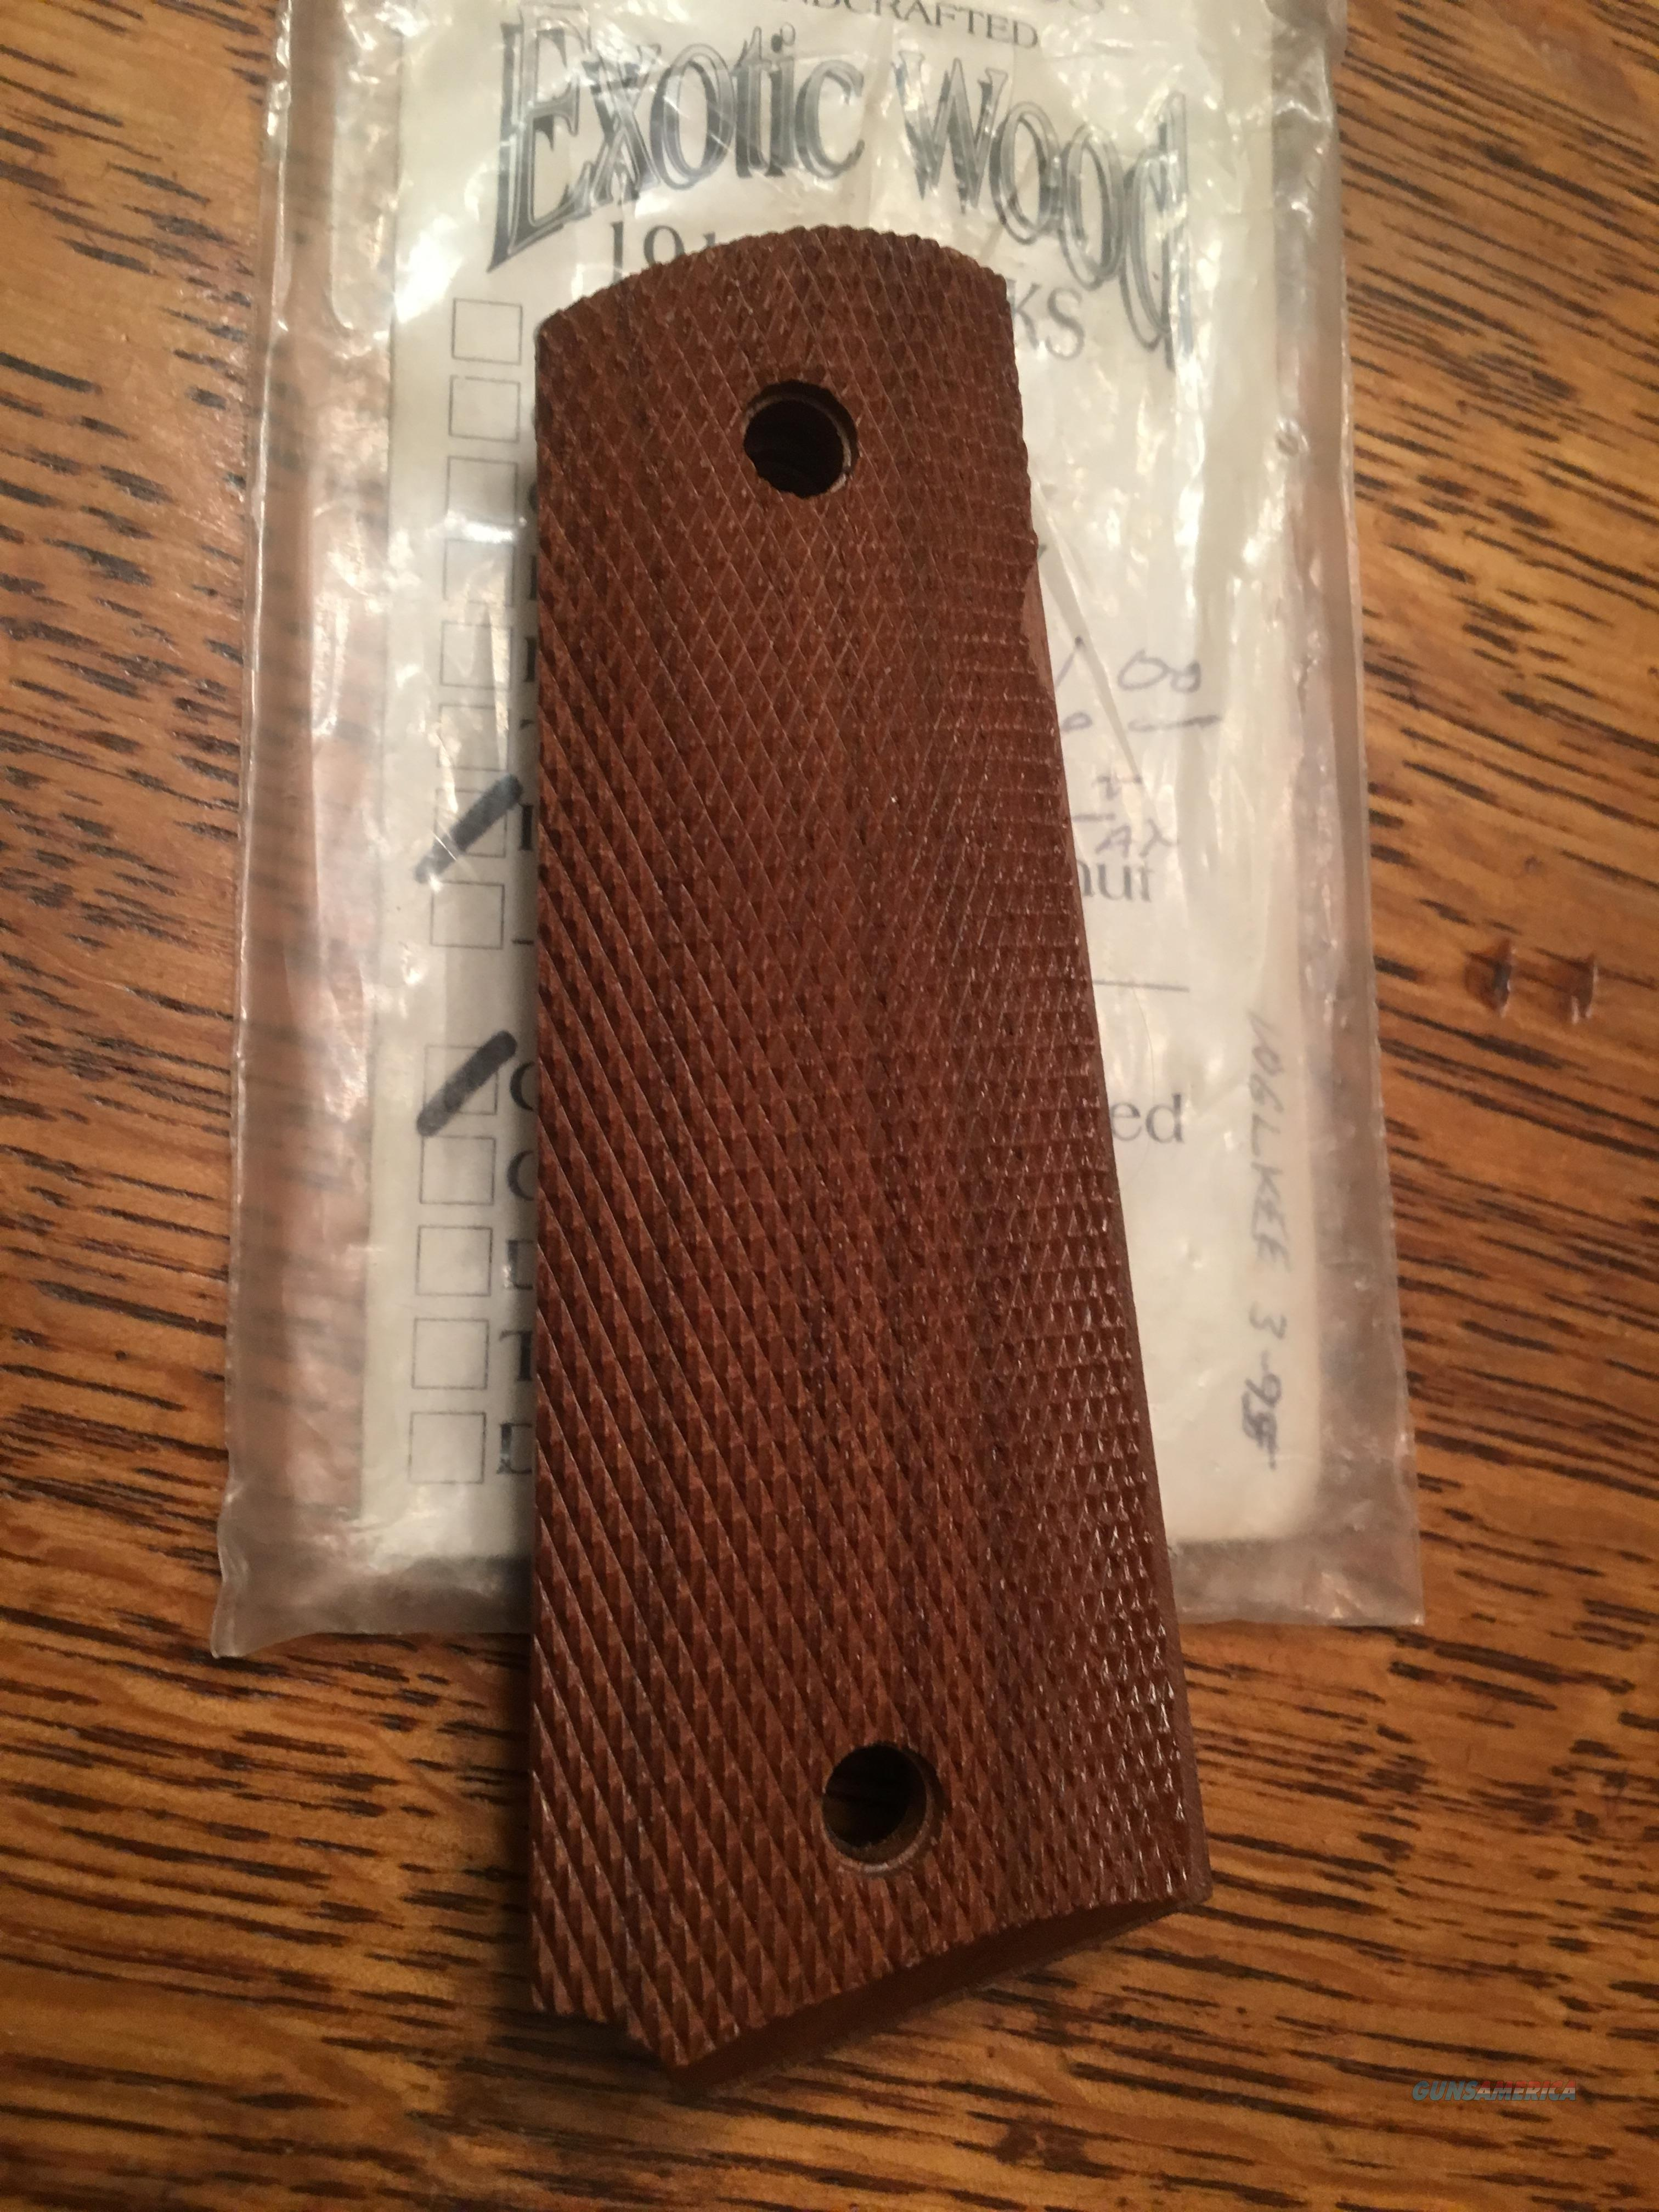 1911 BLACK WALNUT WOOD GRIPS   Non-Guns > Gunstocks, Grips & Wood